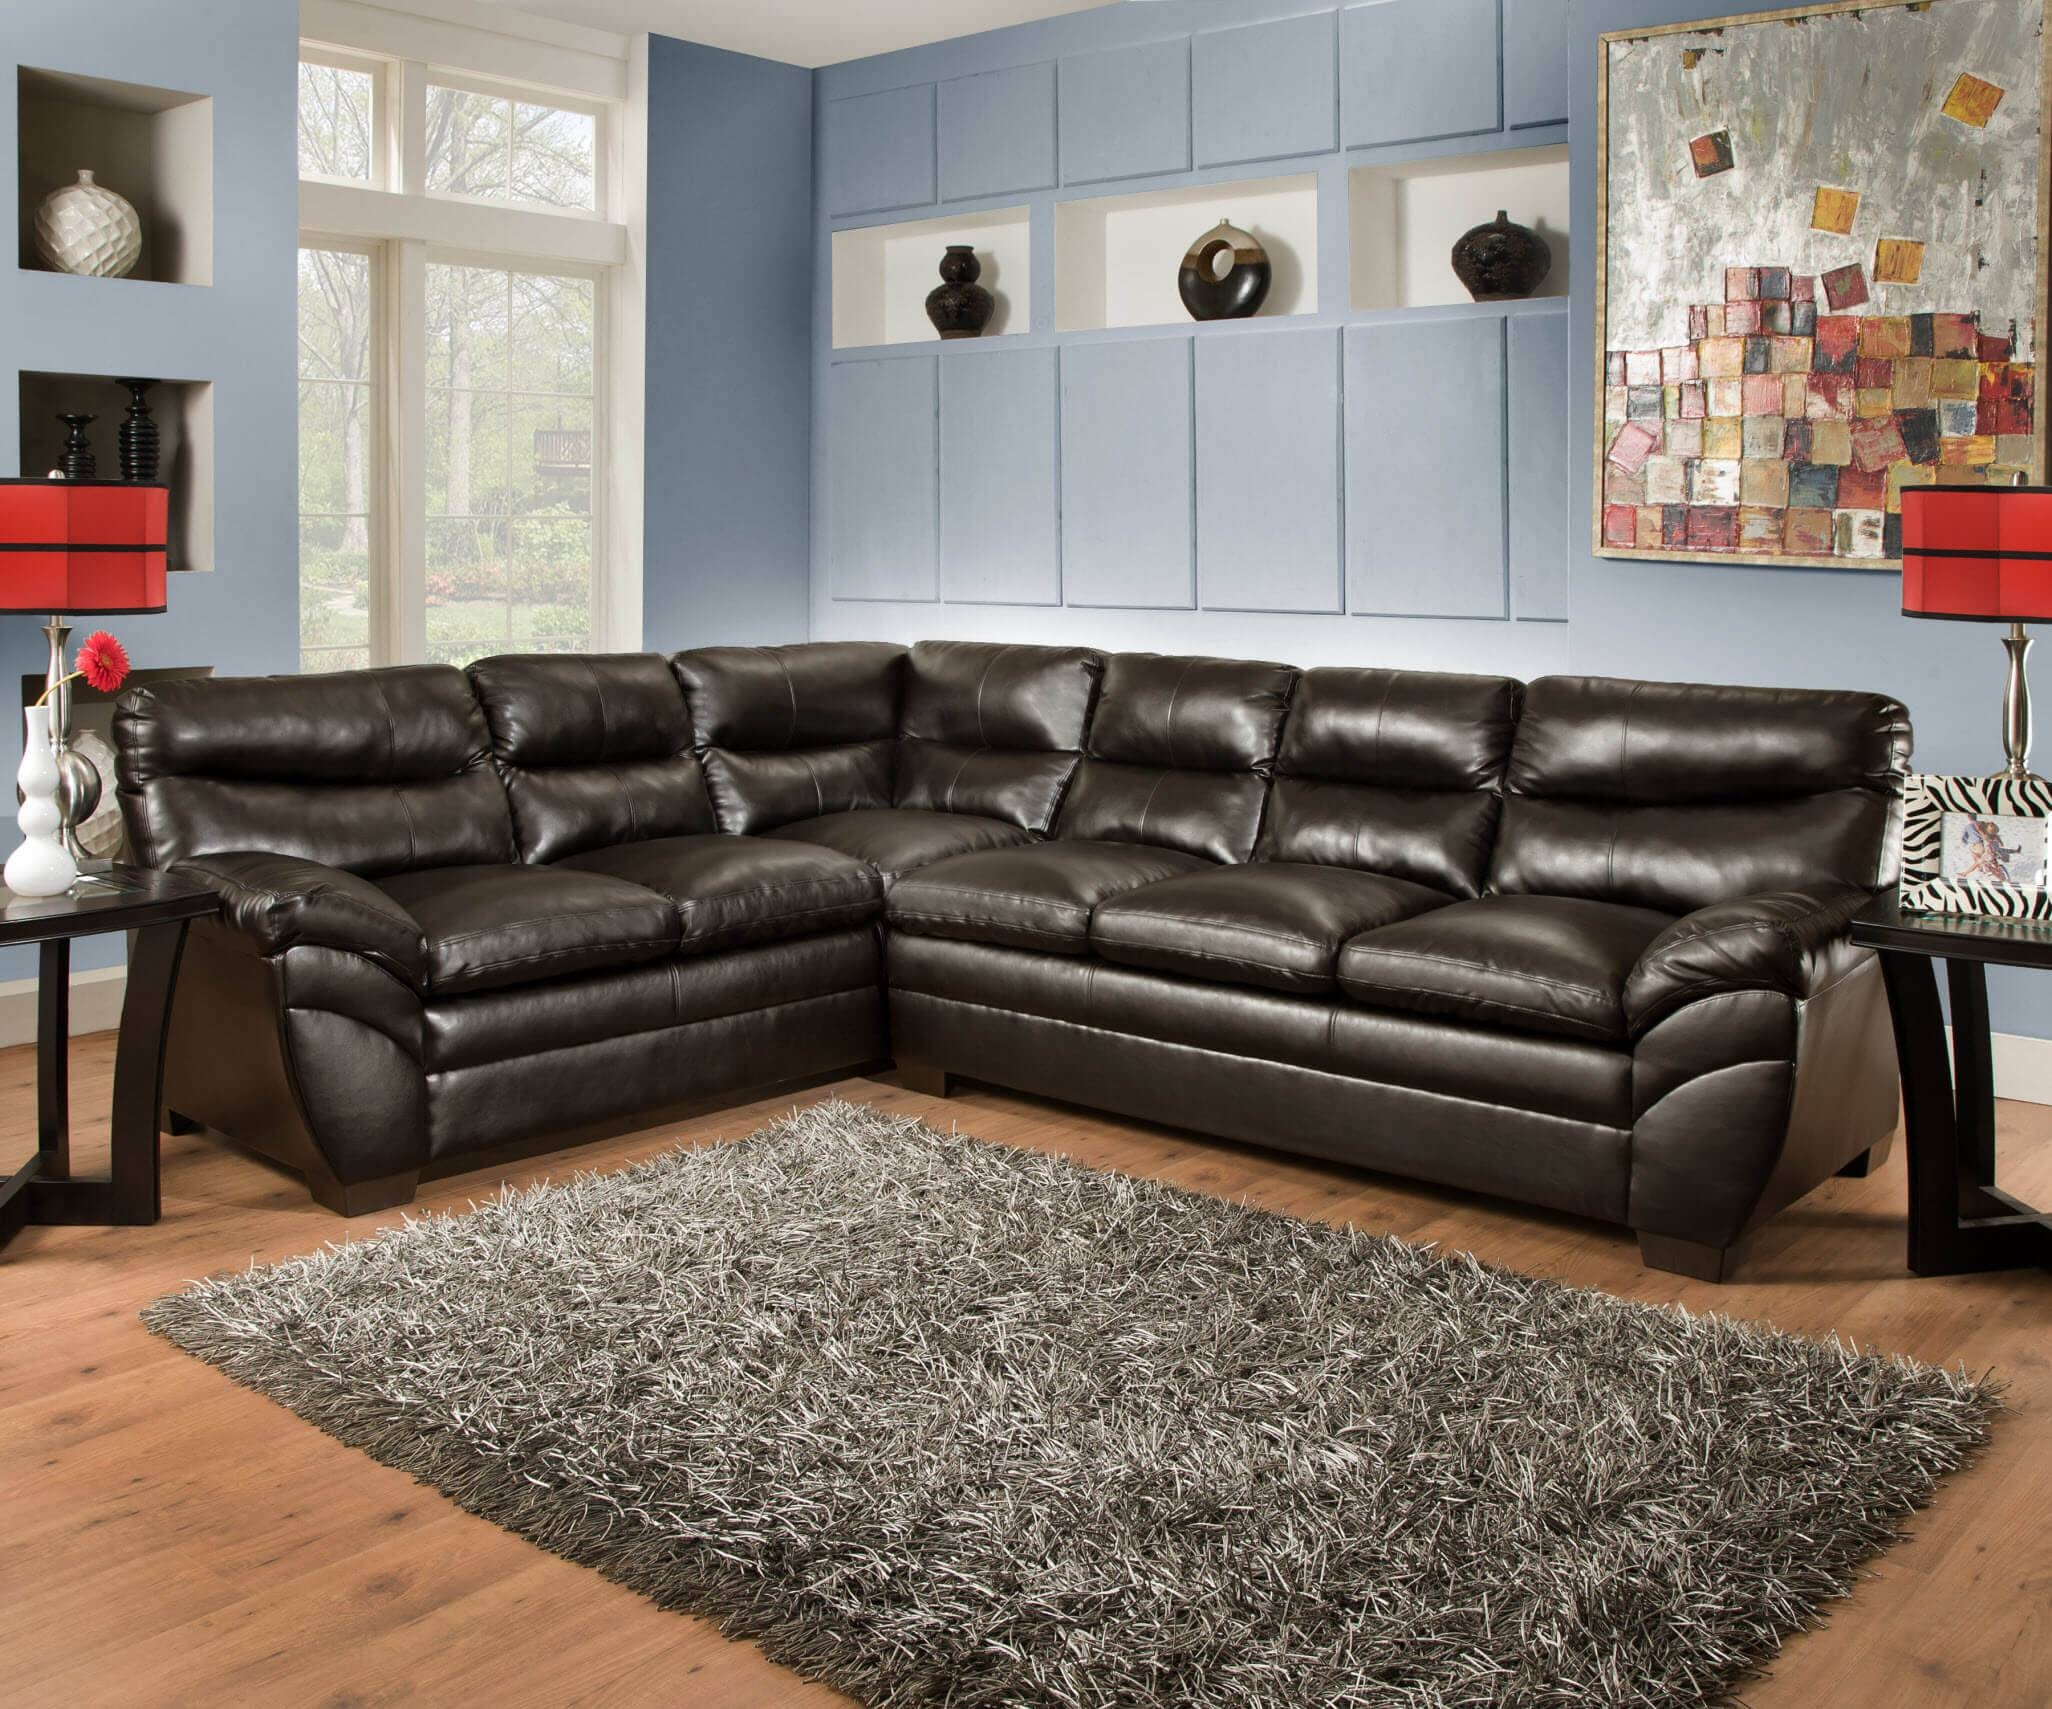 Furniture: Sectional Sofas Big Lots | Simmons Bonded Leather Sofa throughout Big Lots Simmons Sectional Sofas (Image 4 of 15)